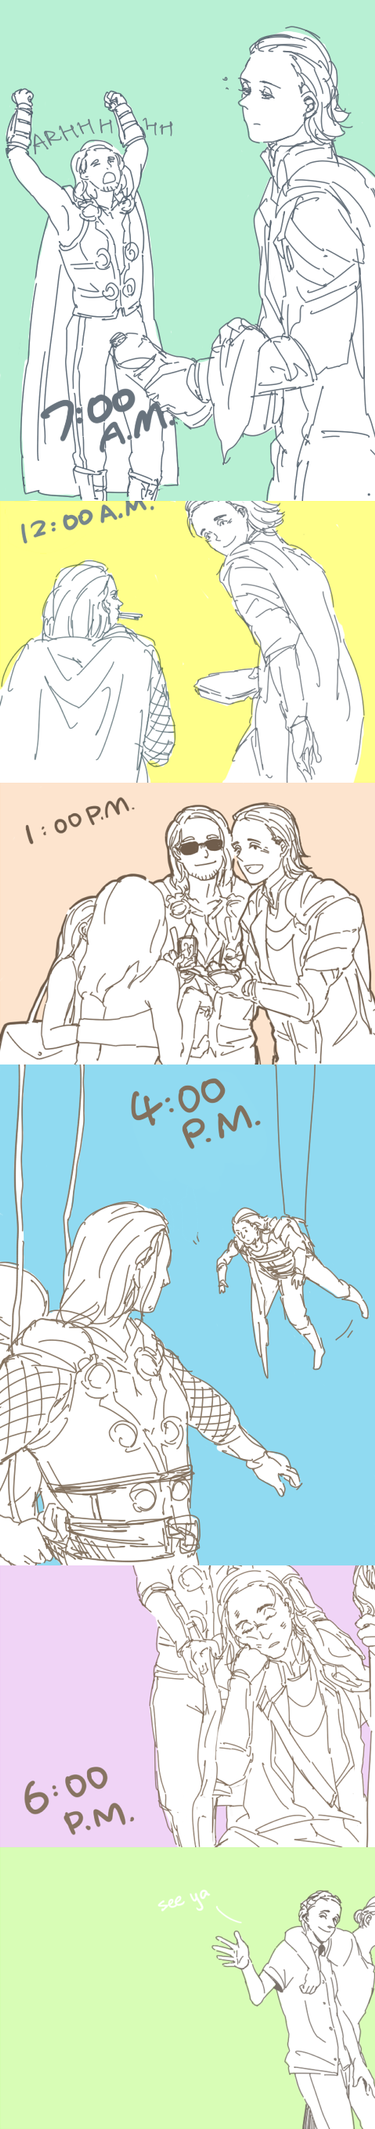 A Day of Odinbros by hammer-in-my-pants